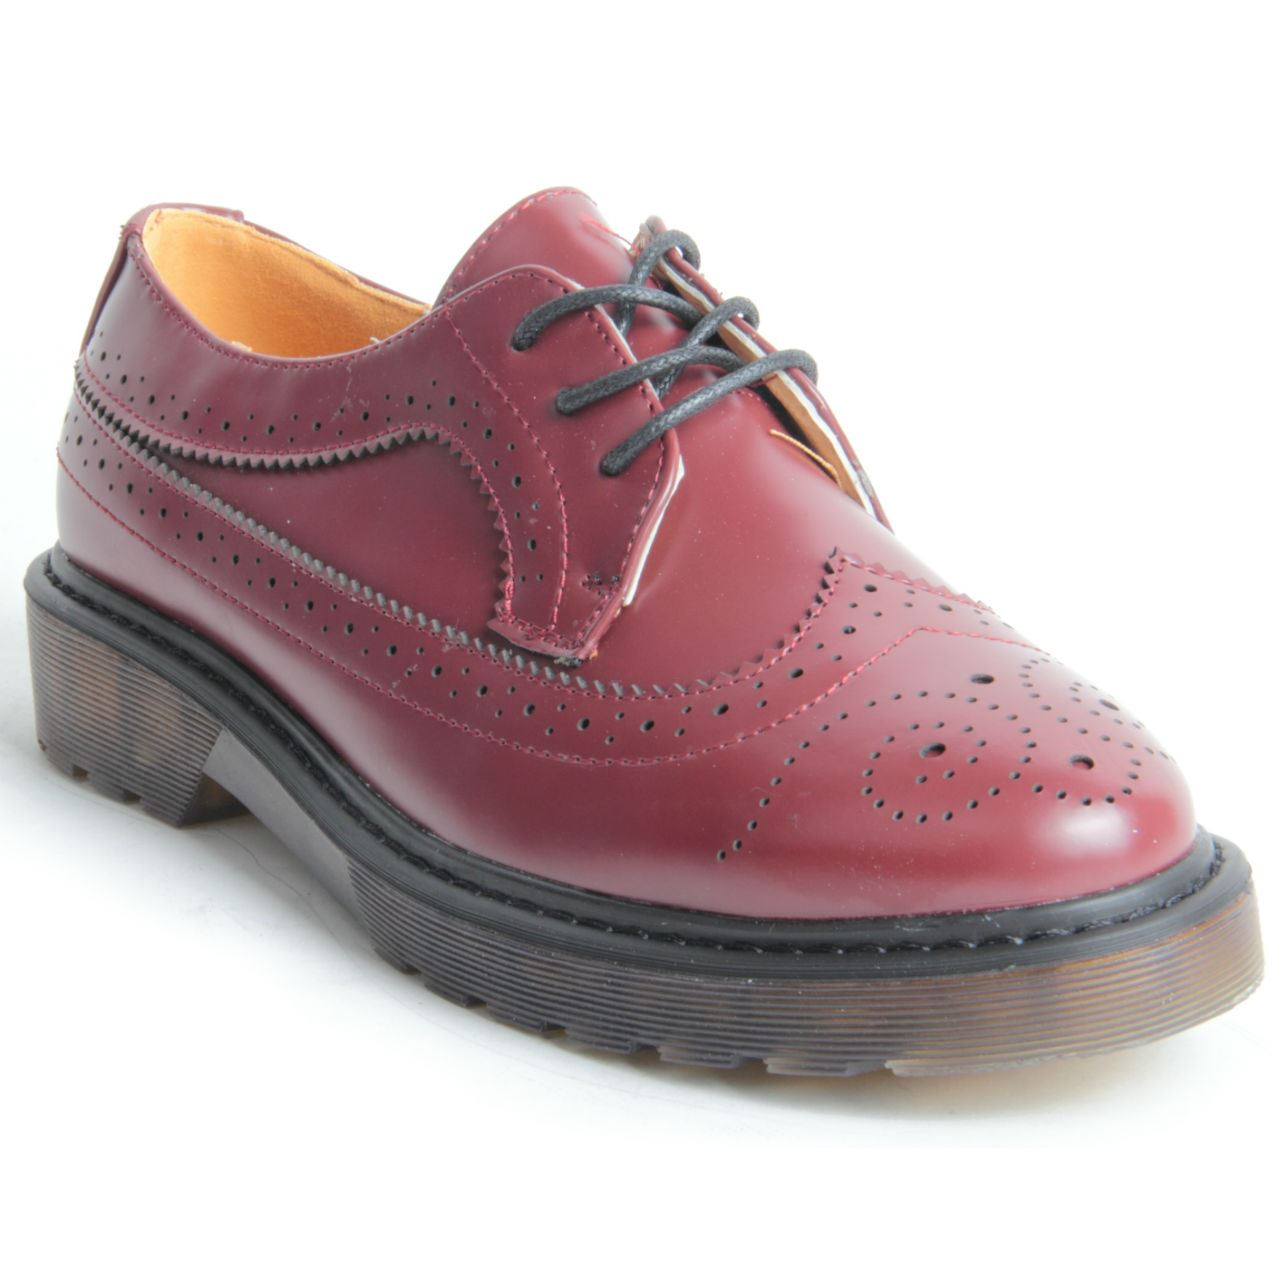 Womens Lace Patent Leather Oxford Shoes with England Style Fruit Candy Casual Baroque Red Shoes